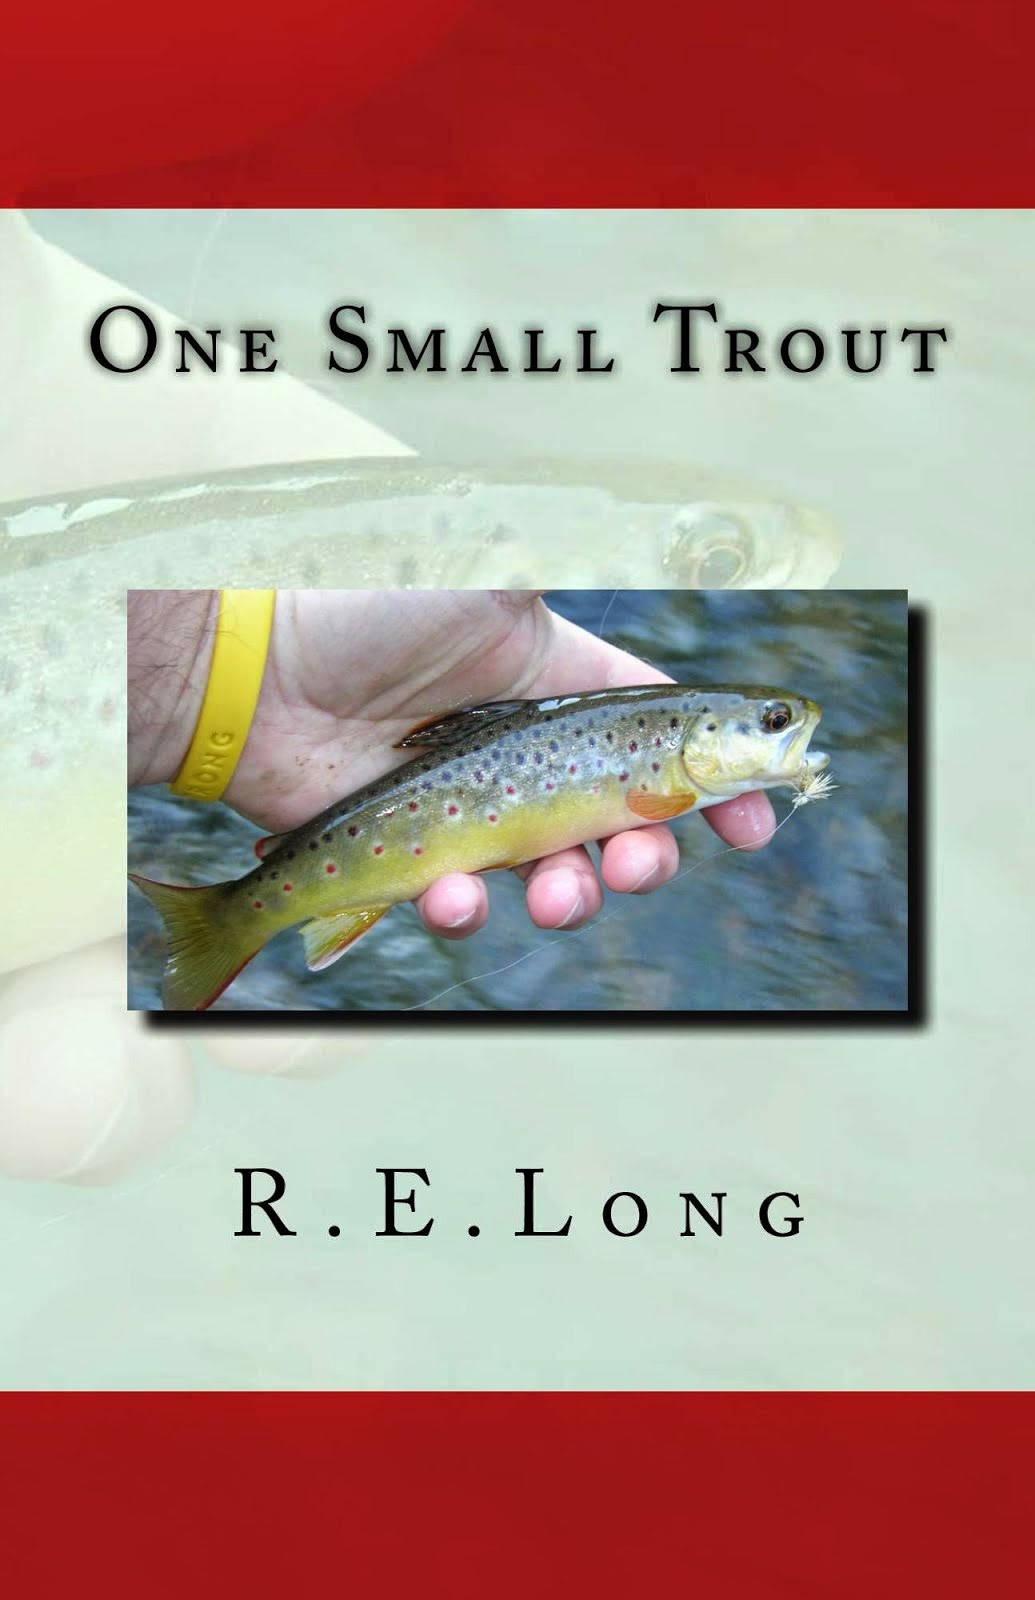 ONE SMALL TROUT